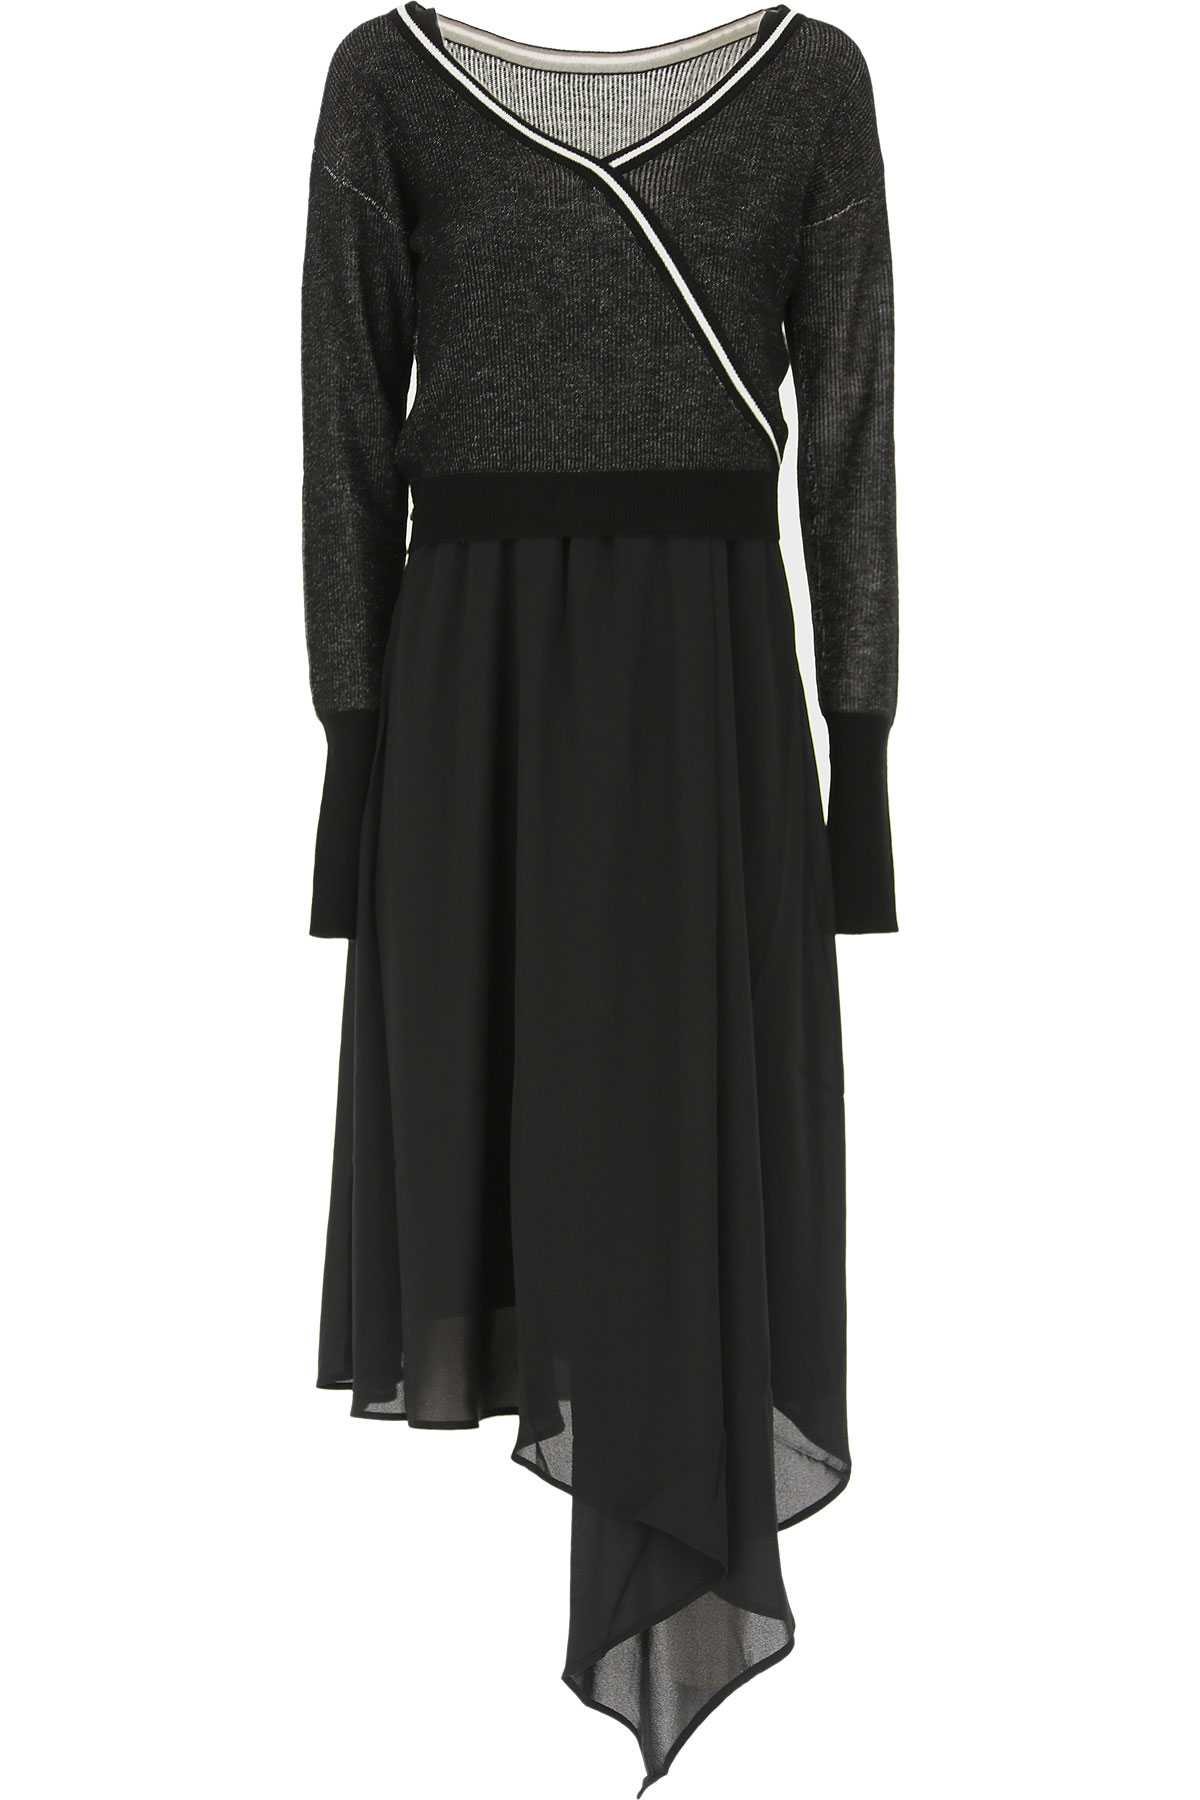 Patrizia Pepe Dress for Women, Evening Cocktail Party On Sale, Street Black, Viscose, 2019, 0 (XS - 38/40) 1 (S - 40/42) 2 (M - 42/44)